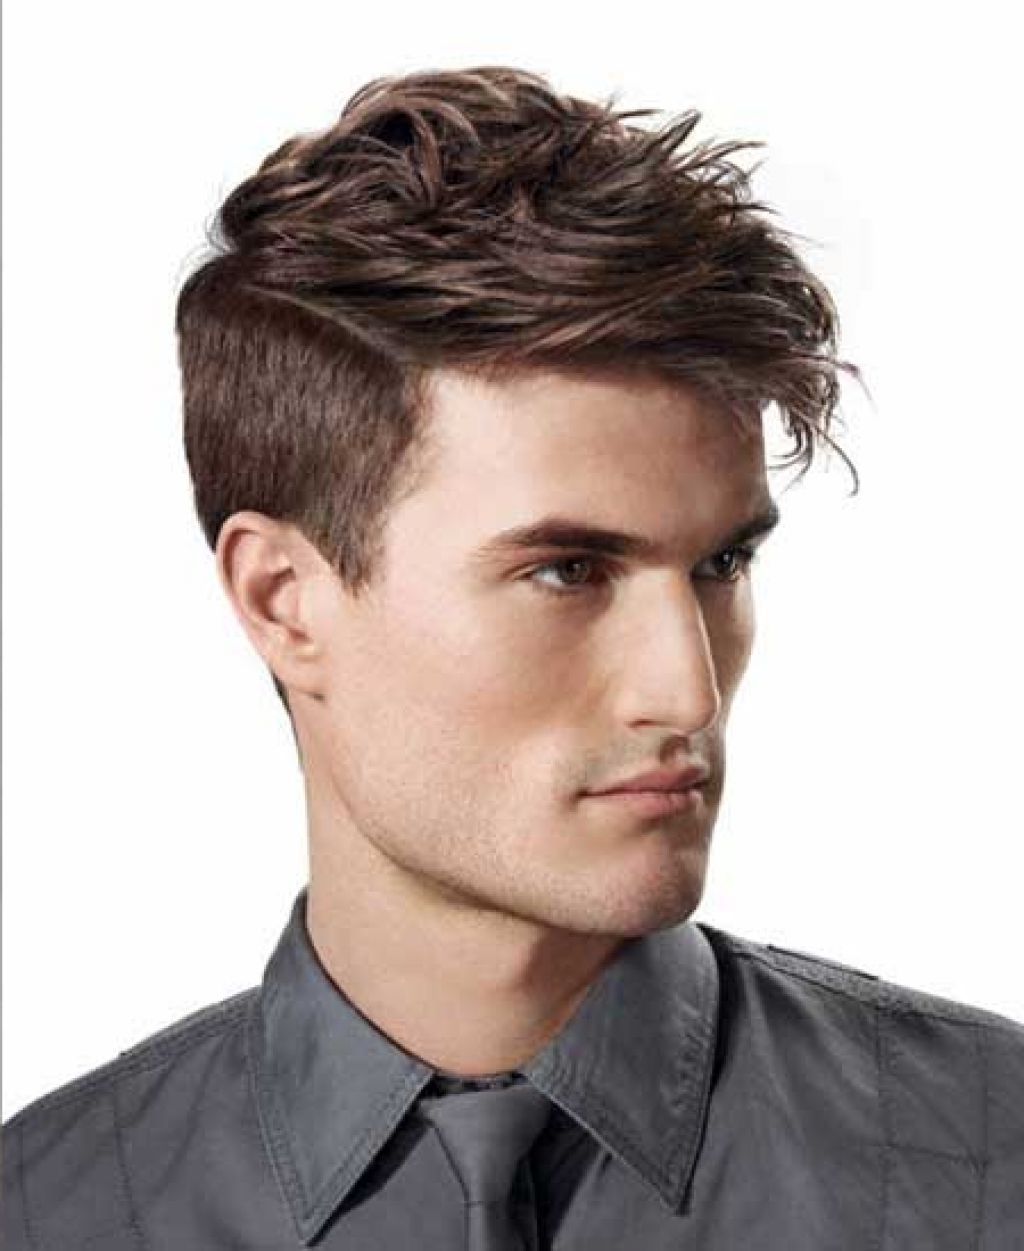 Boys Hairstyles Ideas To Look Super Cool The Xerxes | Boy 10+ Amazing Medium Length Hairstyles For Boys